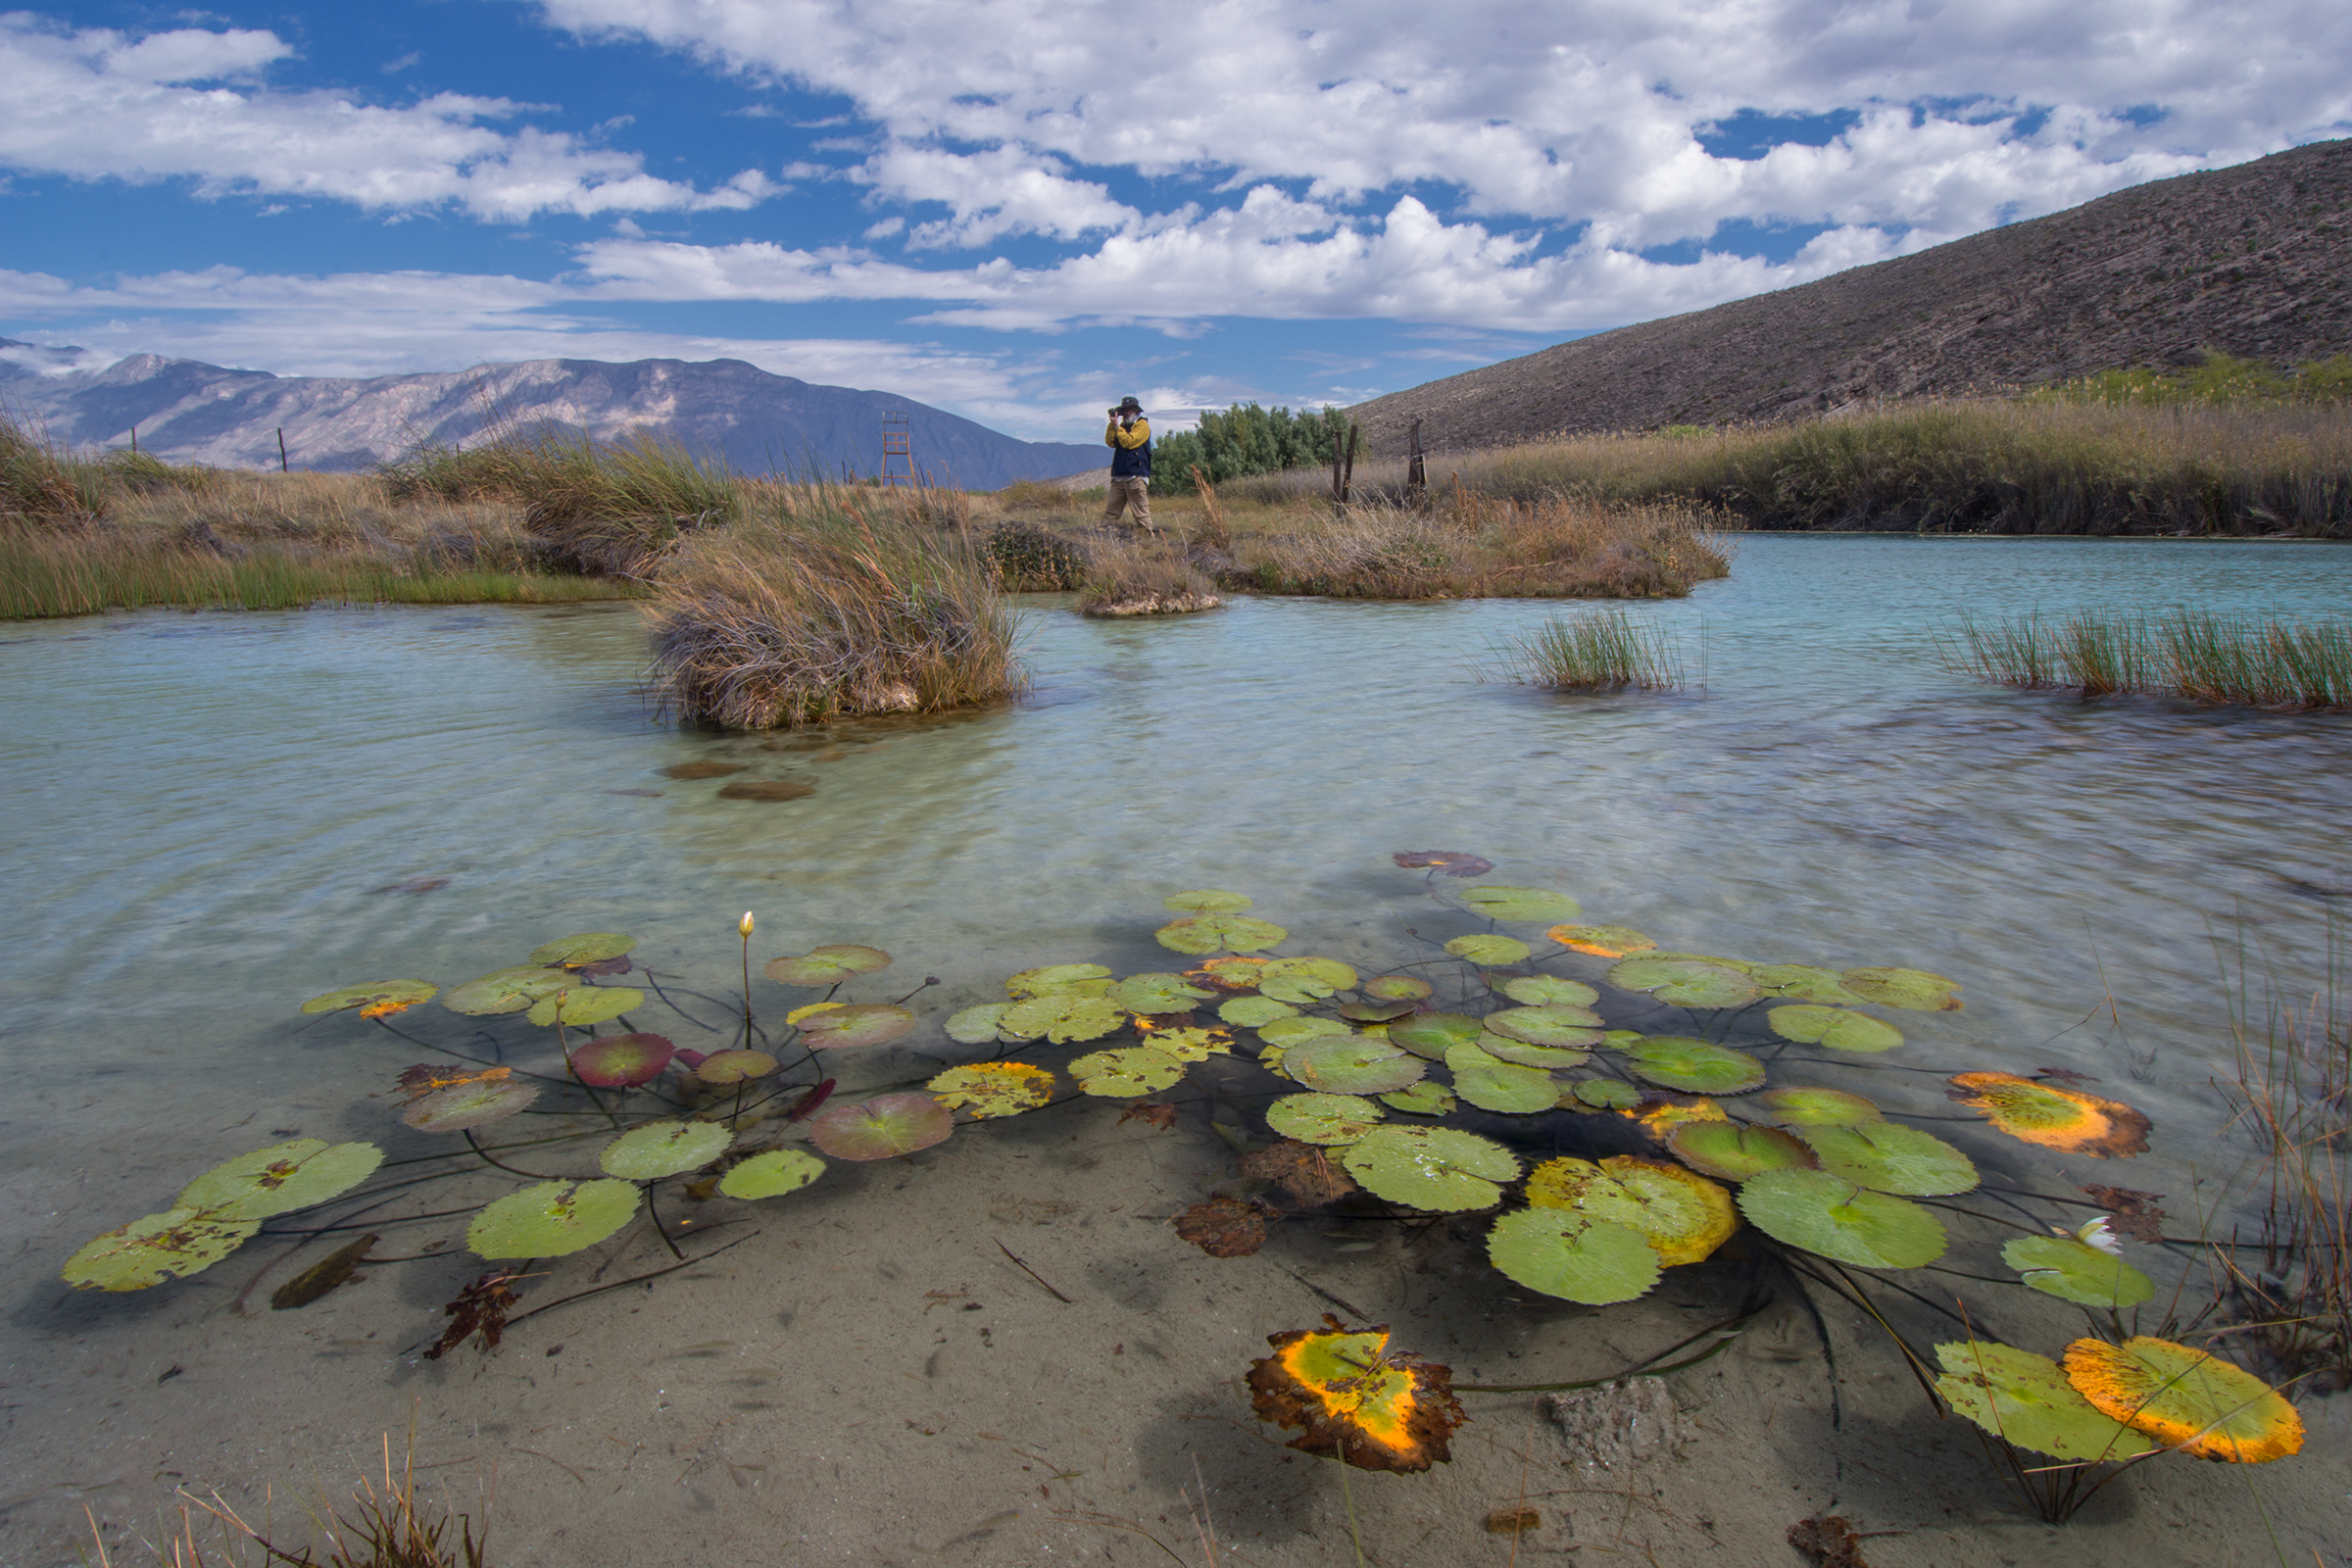 El Mojarral—a large private pond with microbial carpets—provides refuge for endemic turtles and fish.